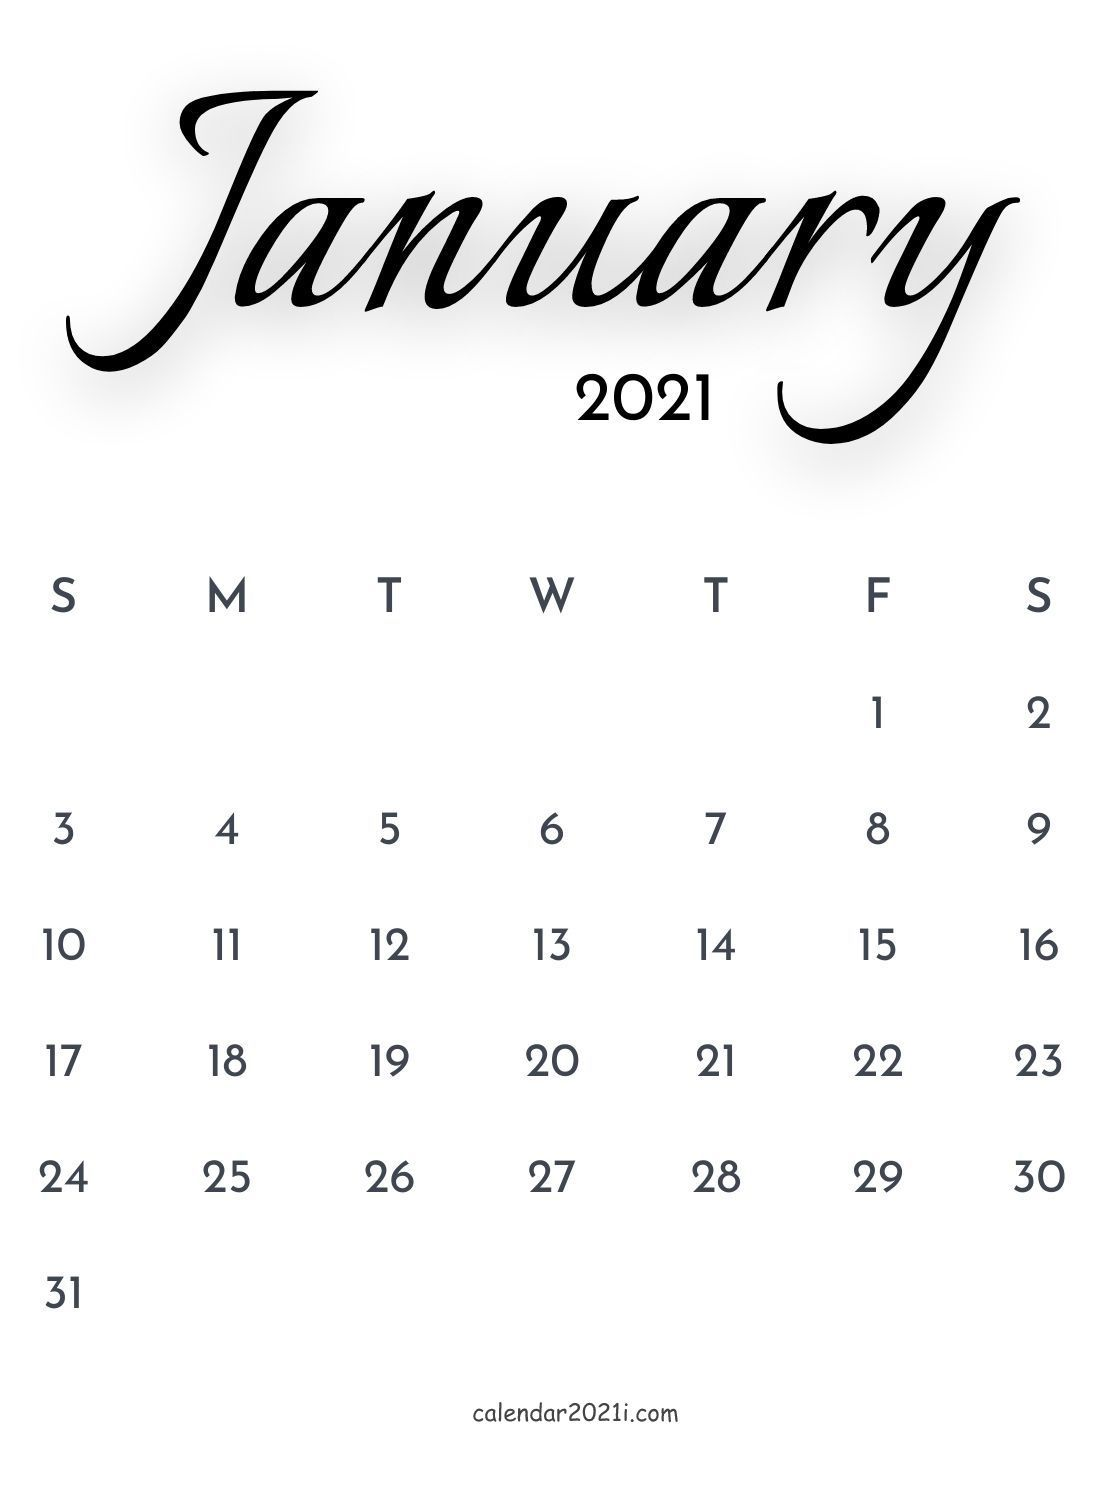 January 2021 Calligraphy Calendar Free download in 2020 ...